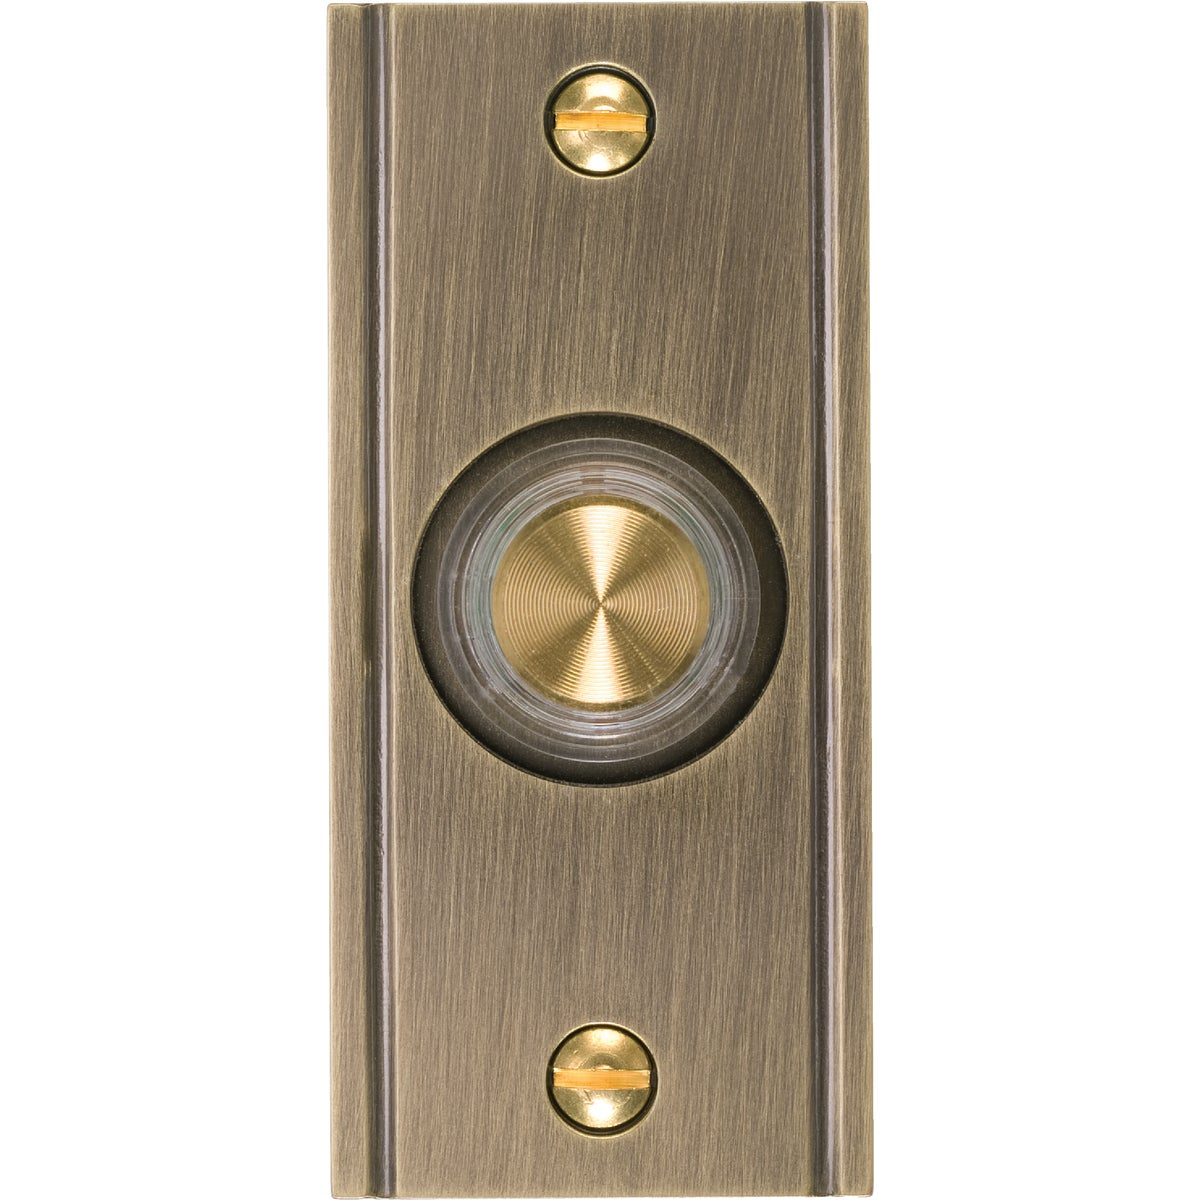 AB LIGHTED PUSHBUTTON